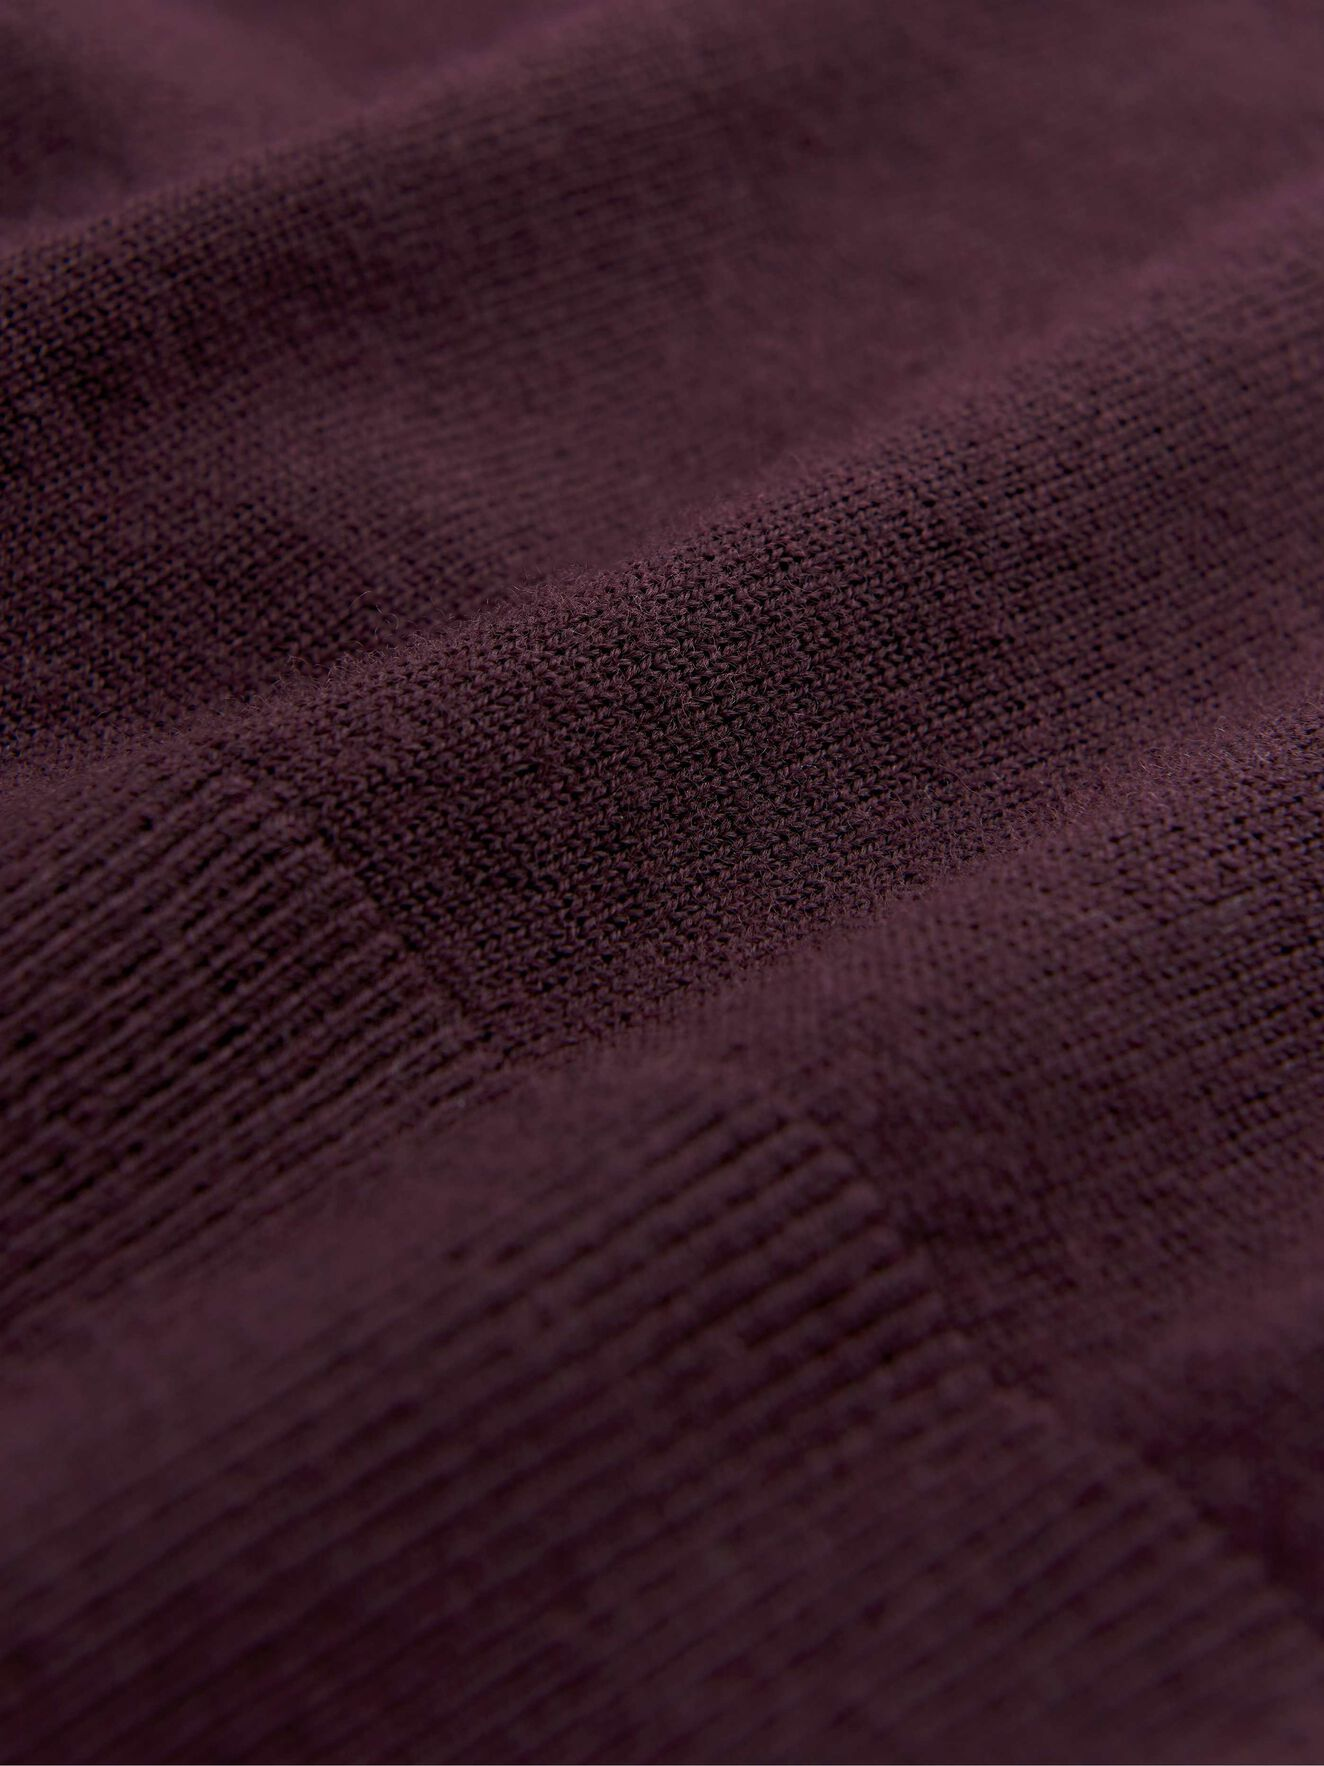 Nichols Pullover in Noon Plum from Tiger of Sweden